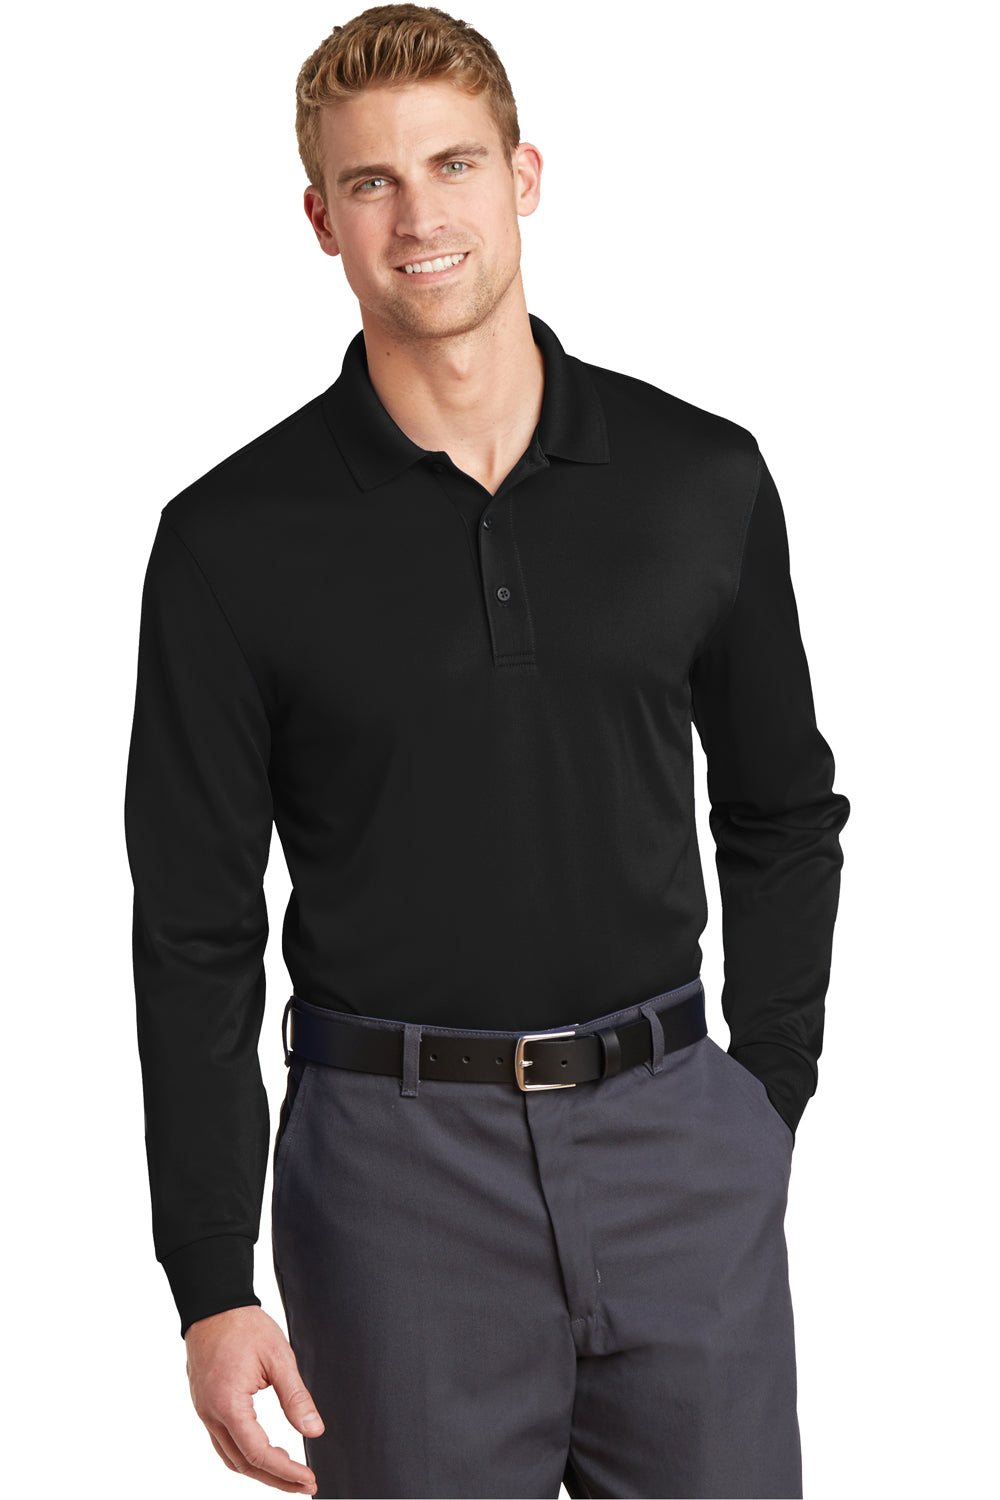 CornerStone CS412LS Mens Select Moisture Wicking Long Sleeve Polo Shirt Black Front